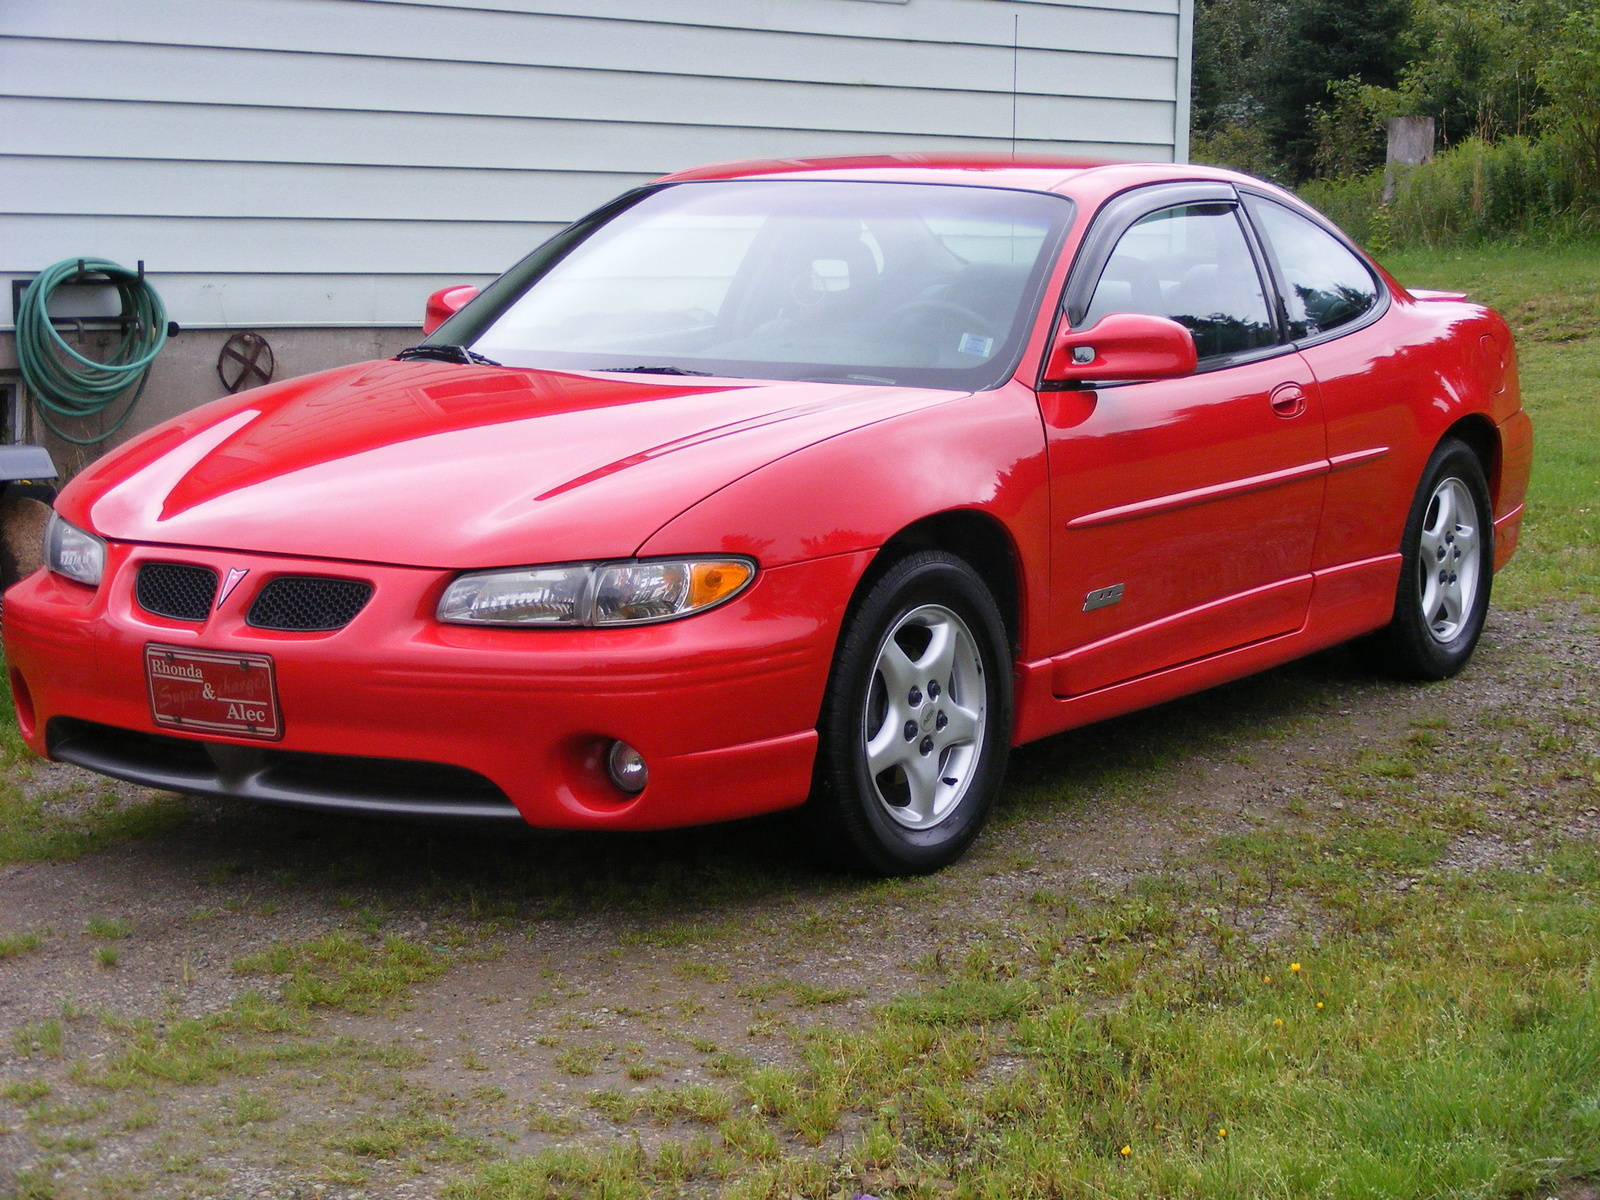 hight resolution of gtp supercharged coupe question type car customization looking for suggestions